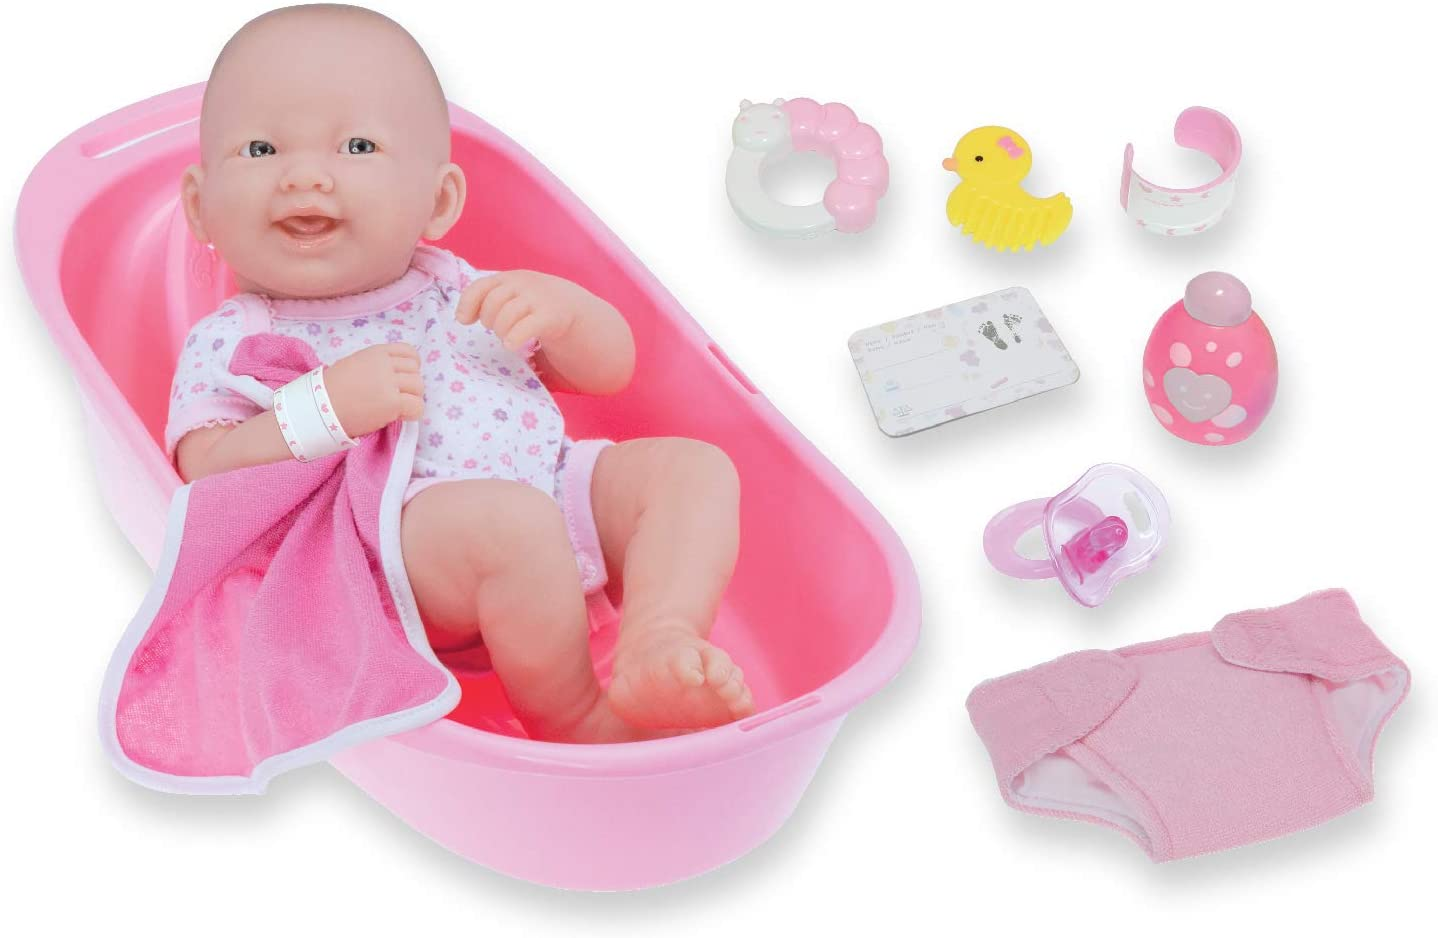 Child Gift New Born One pink Dummy Decoration Baby Shower Decorations